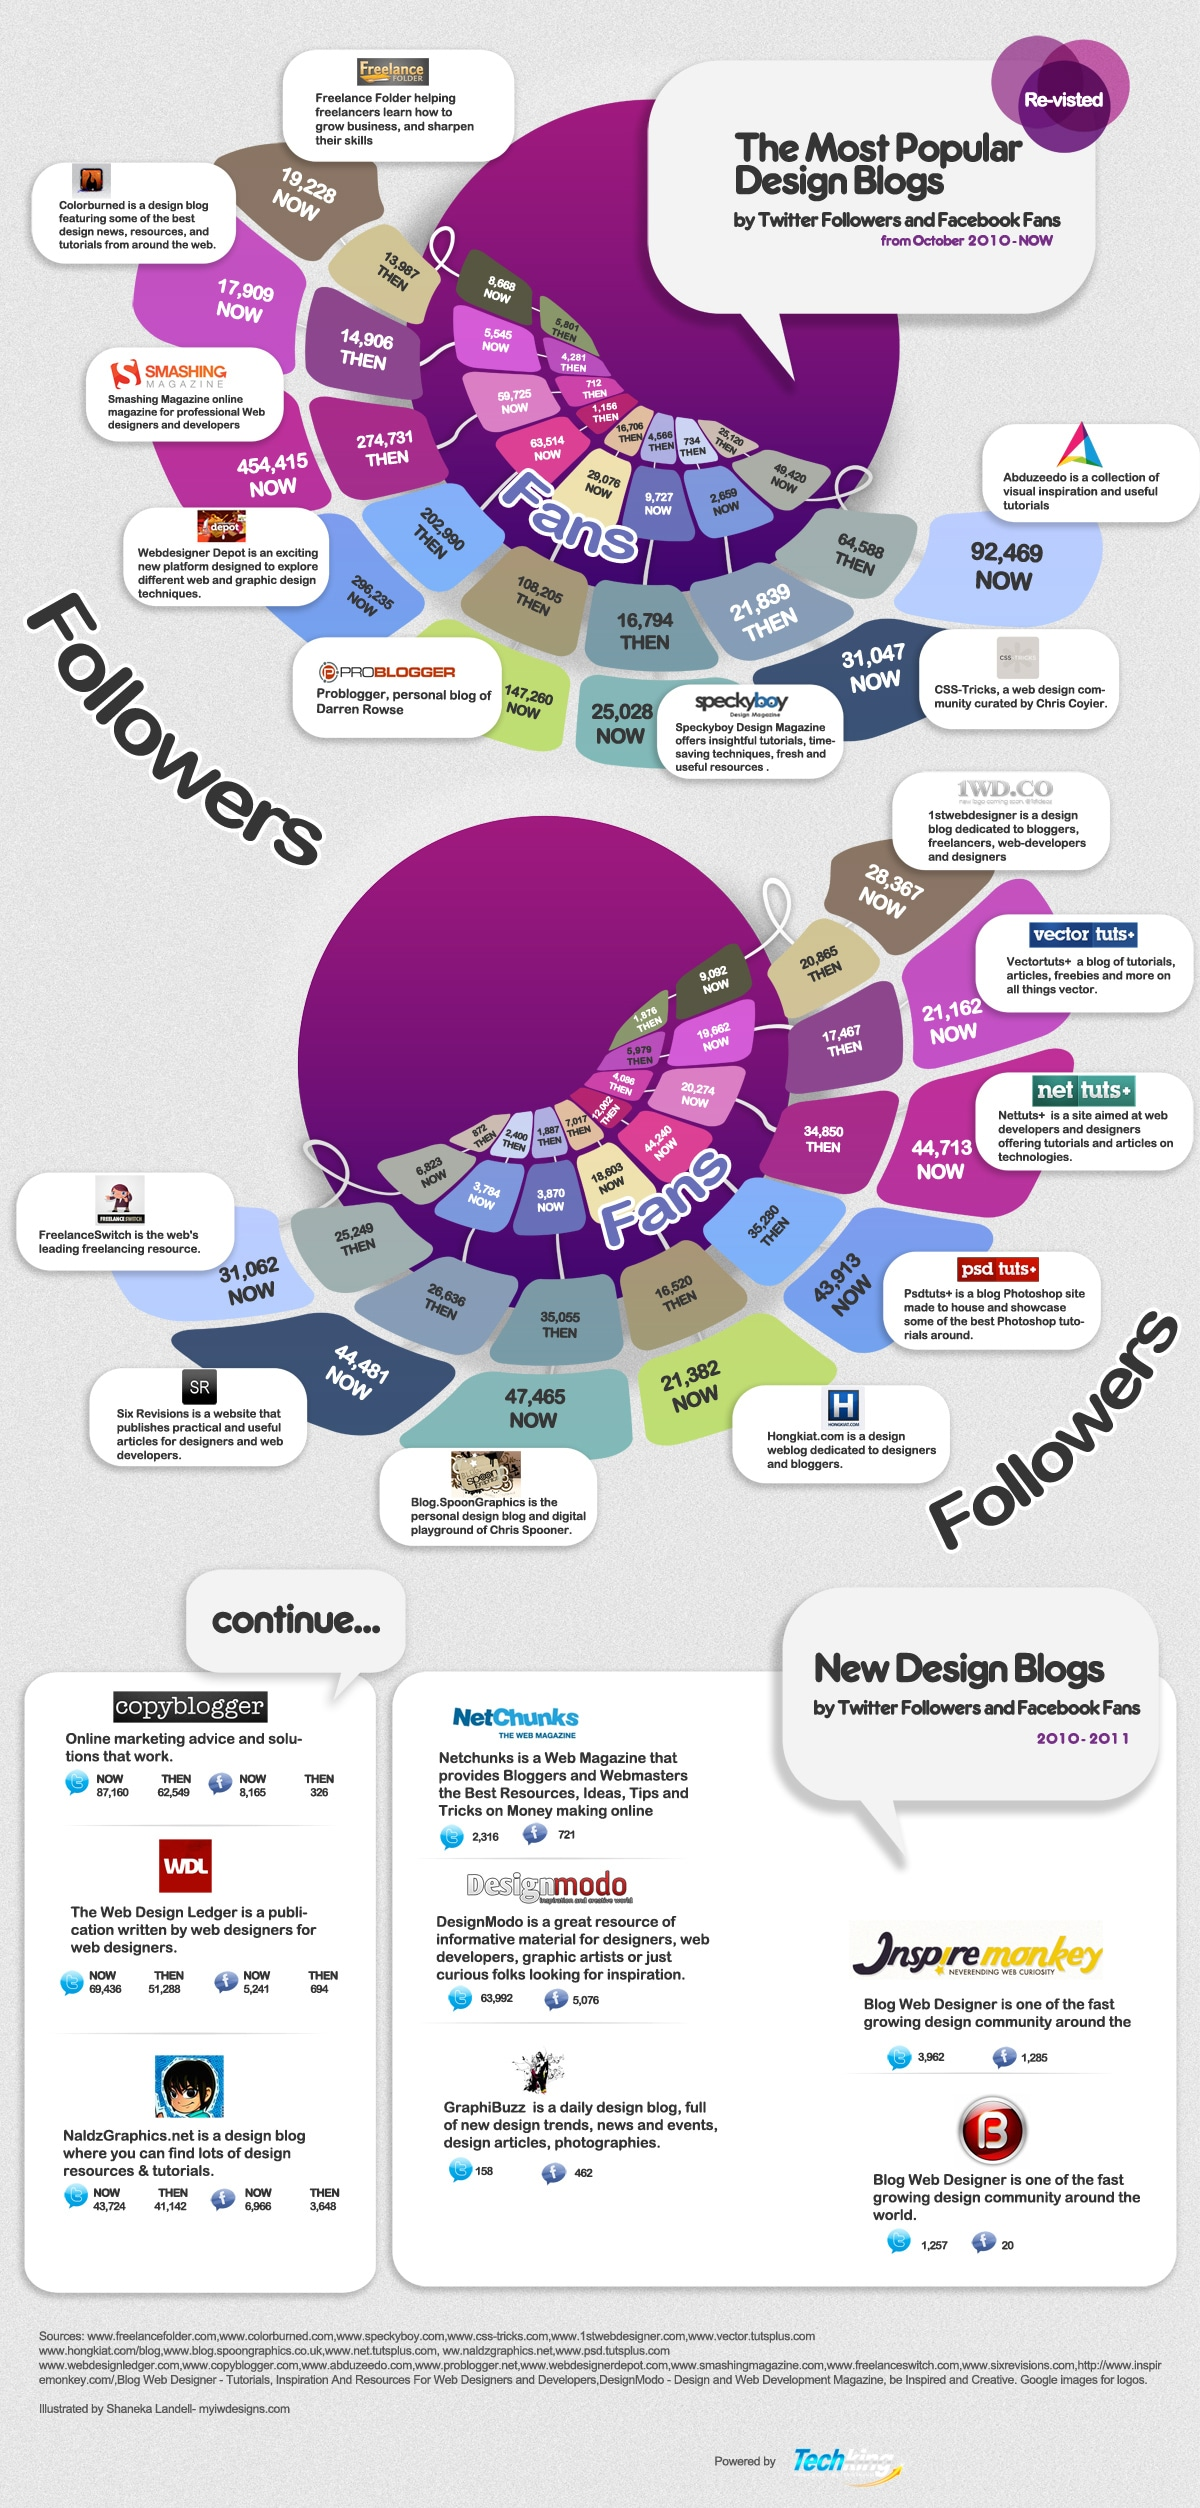 Most Popular Design Blogs By Social Media Following [Infographic]